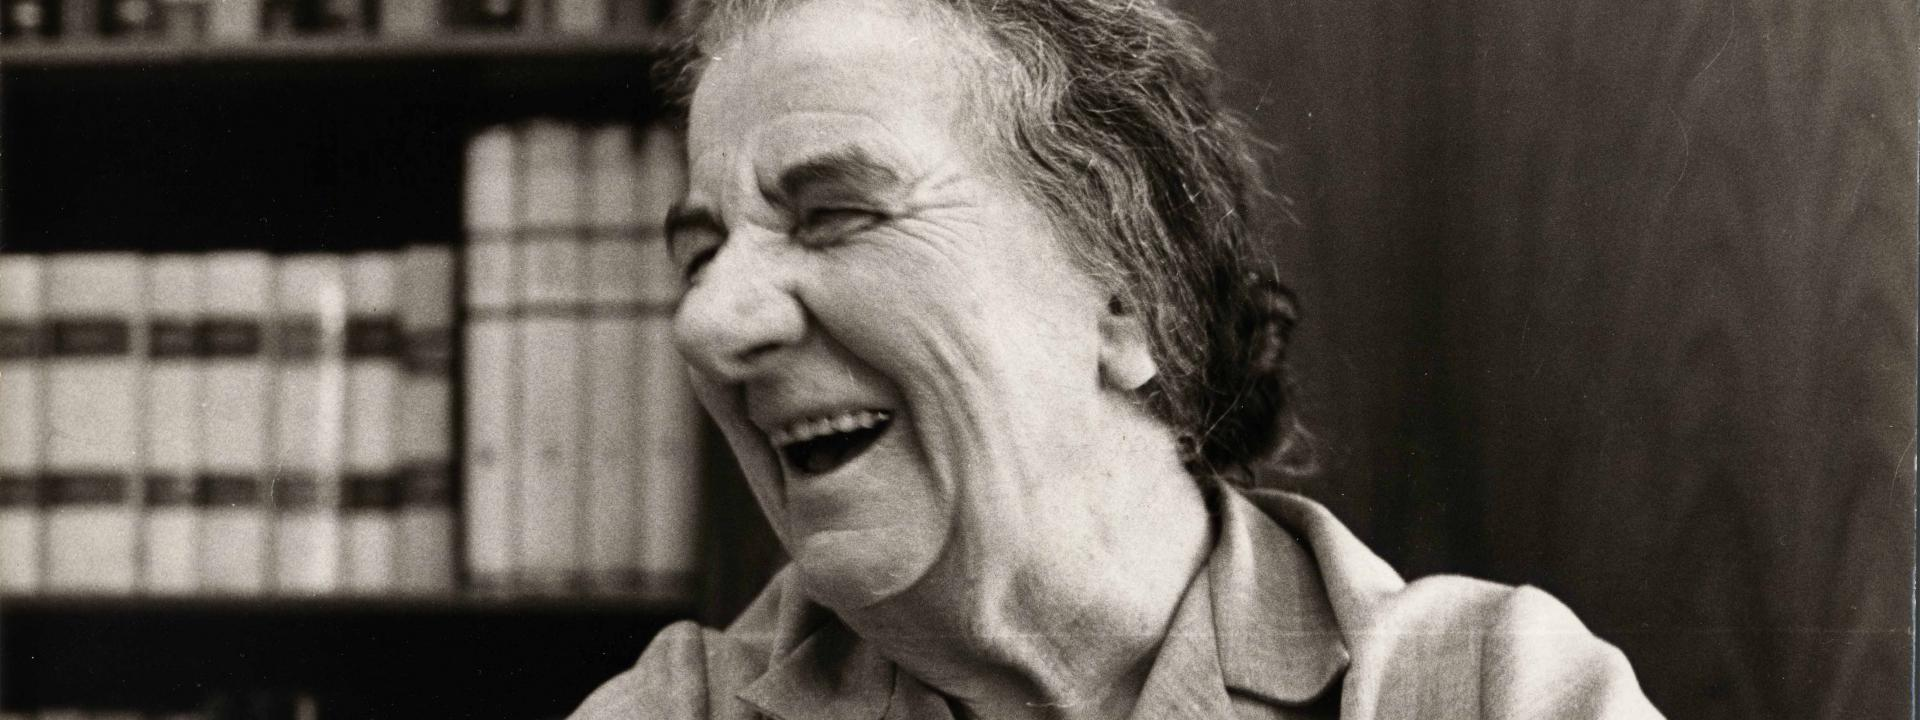 GOLDA MEIR,  A WOMAN AT THE FOREFRONT